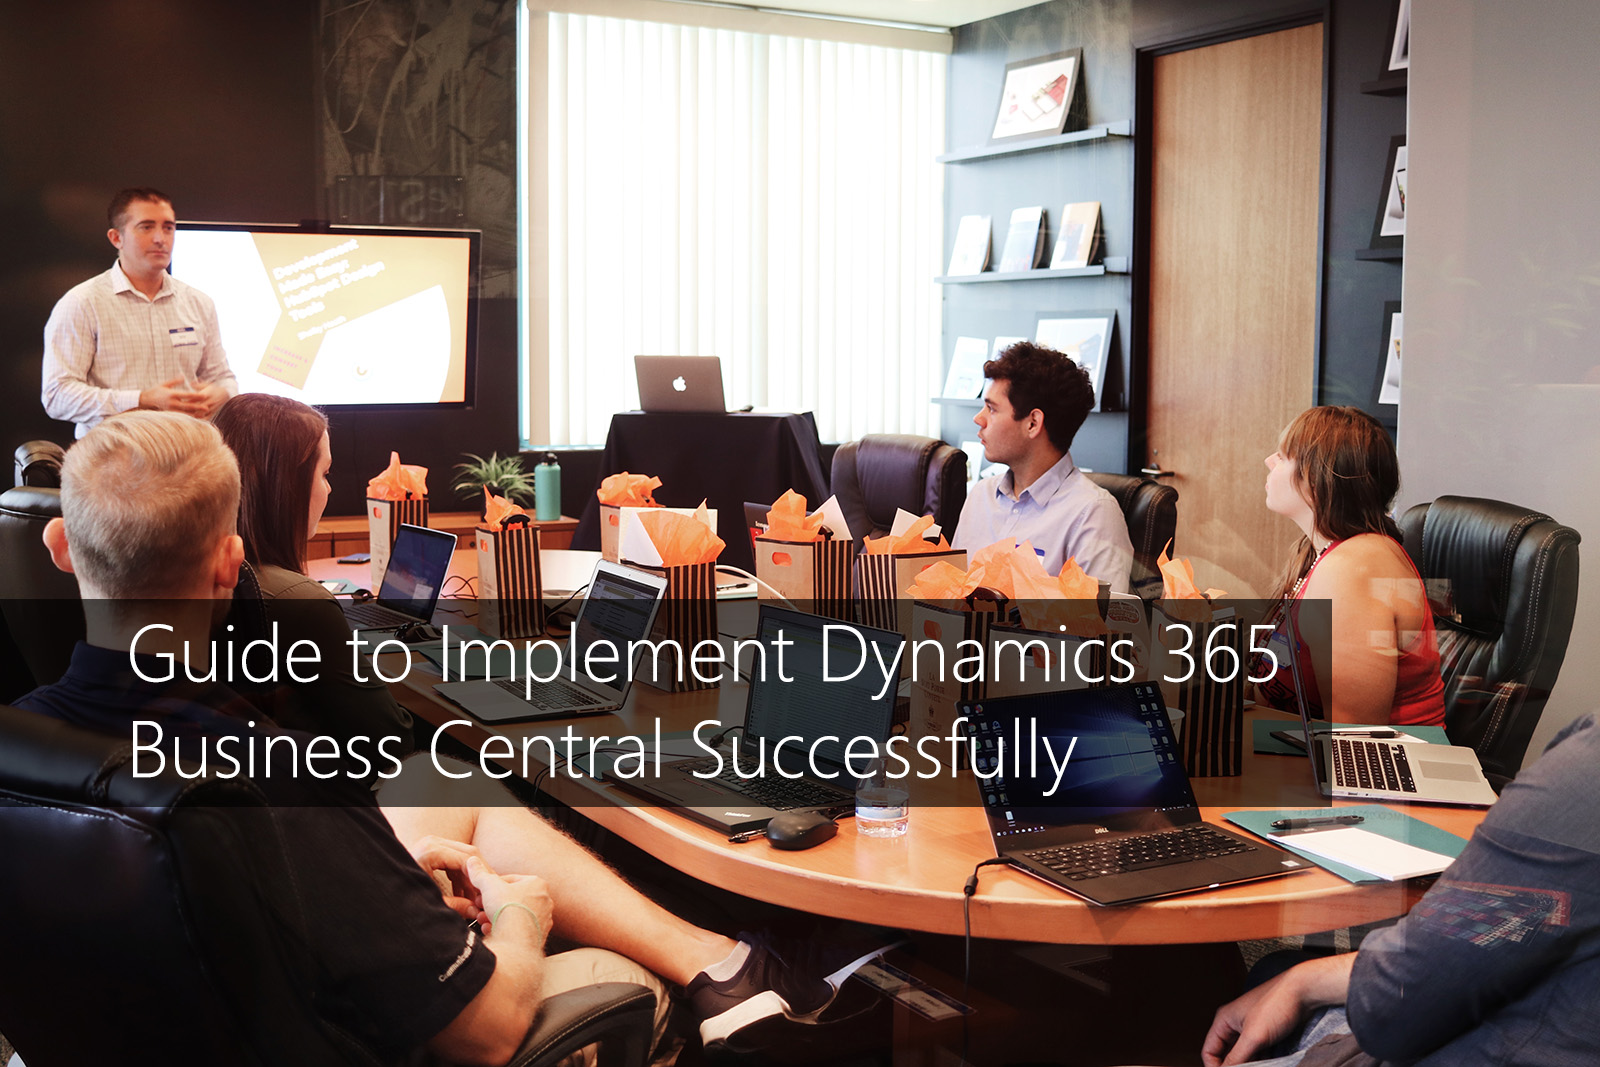 TMC-blog-guide-to-implement-dynamics-365-business-central-successfully